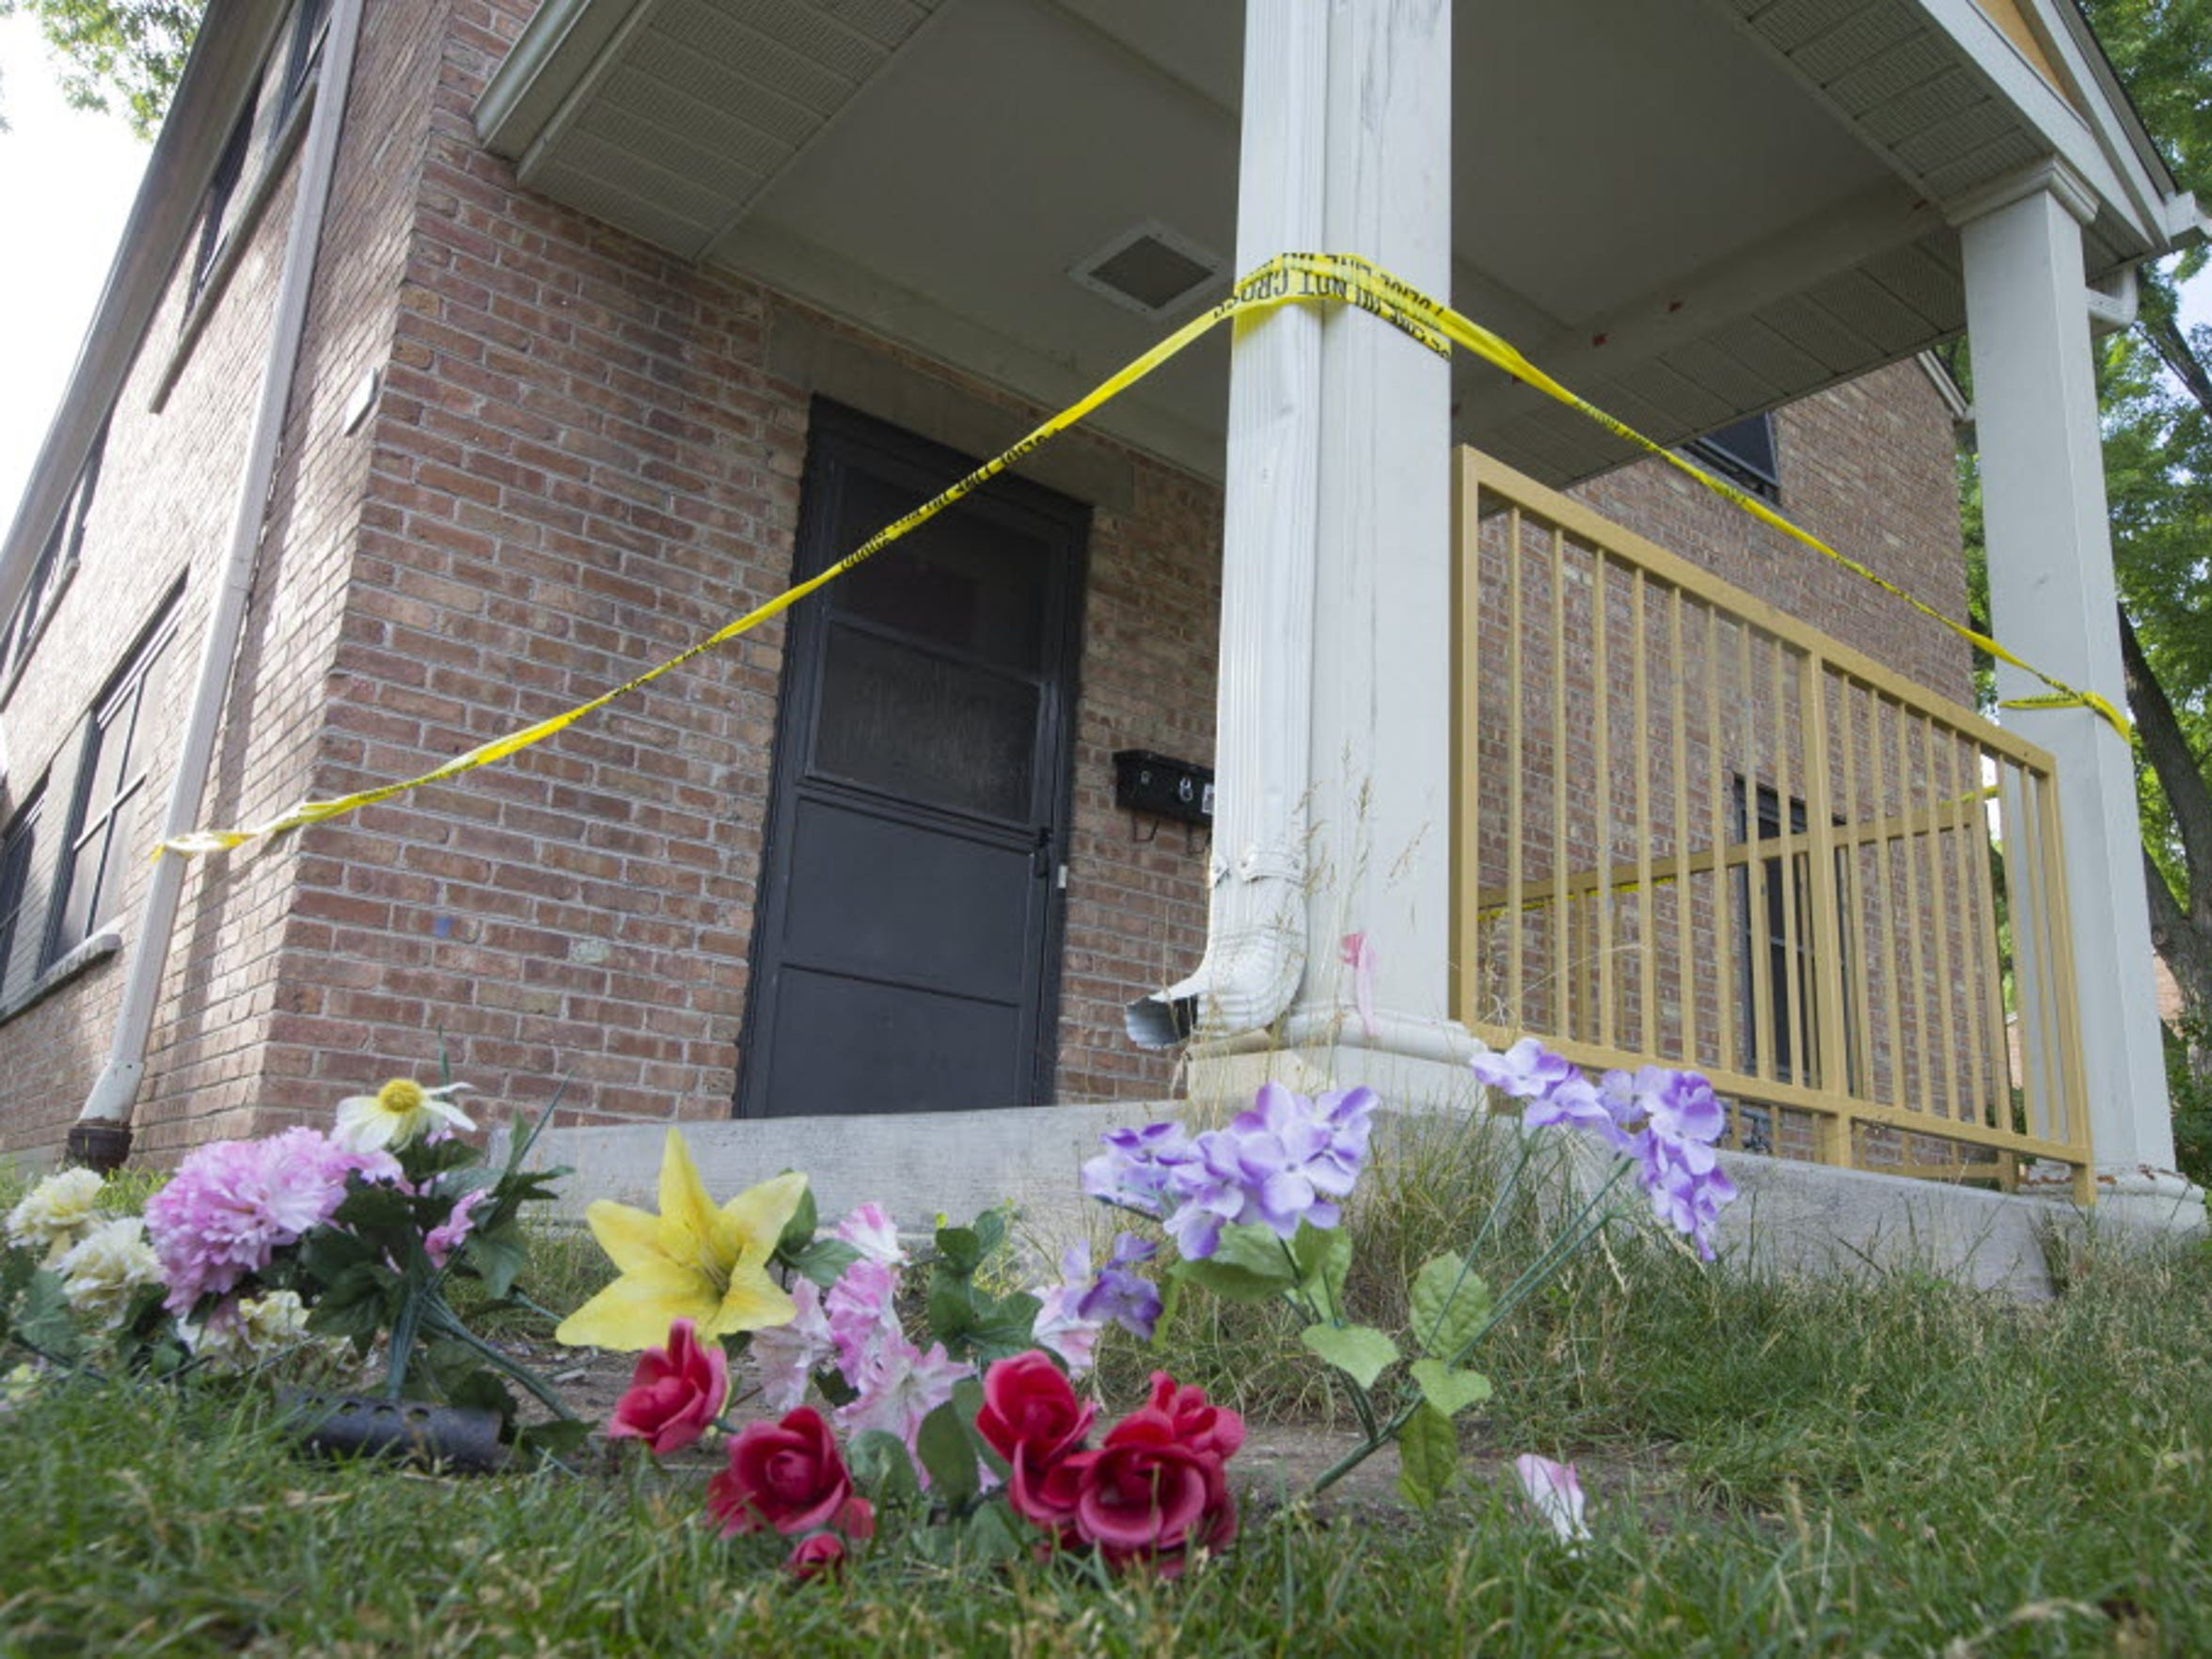 Police tape marks the scene where 13-year-old Giovonnie G. Cameron was shot and killed near Lincoln Park in Milwaukee on July 8. As of Nov. 15, fatal shootings in Milwaukee are up 77 percent compared to the same period in 2014.